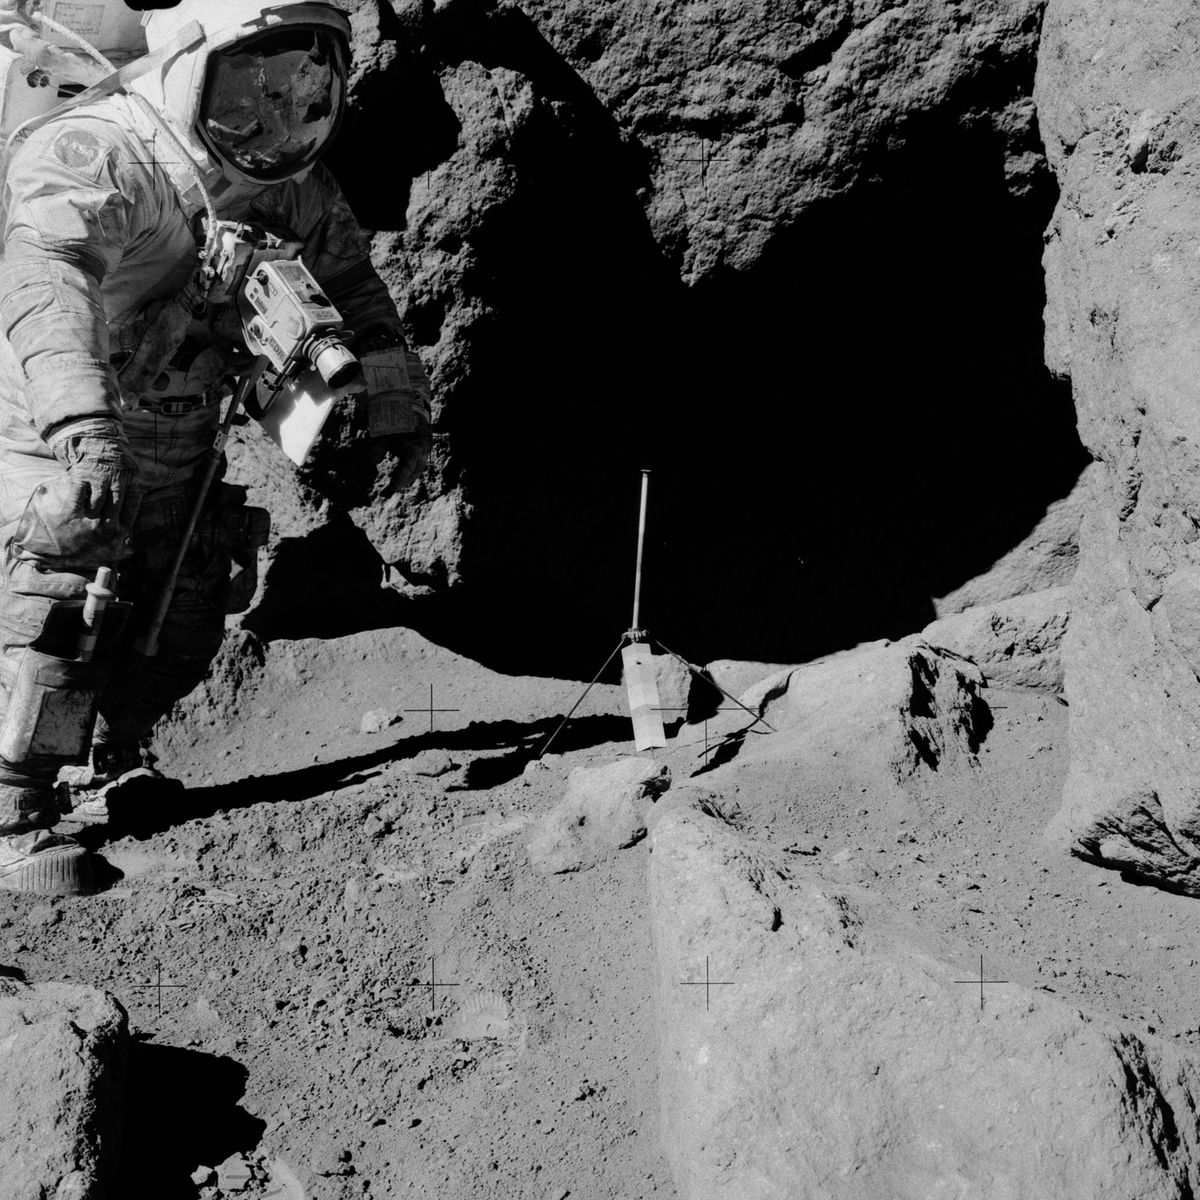 Gene Cernan, from Apollo 17, stands next to a gnomon used to measure slope and rock characteristics. On the Moon. Credit: NASA